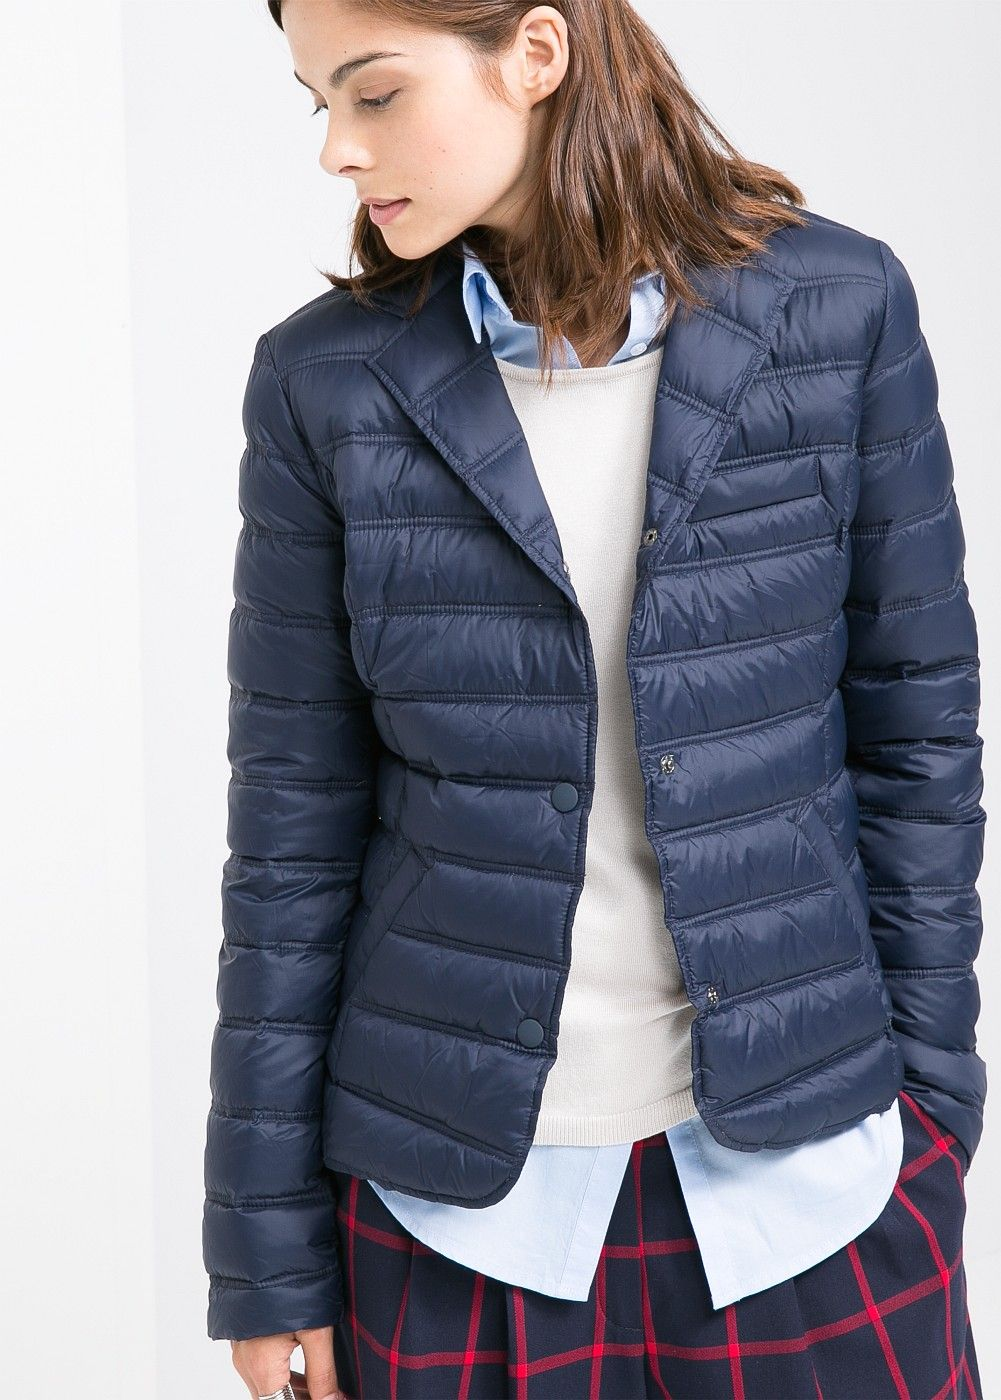 Foldable feather down jacket | Feathers, Welt pocket and Small bags